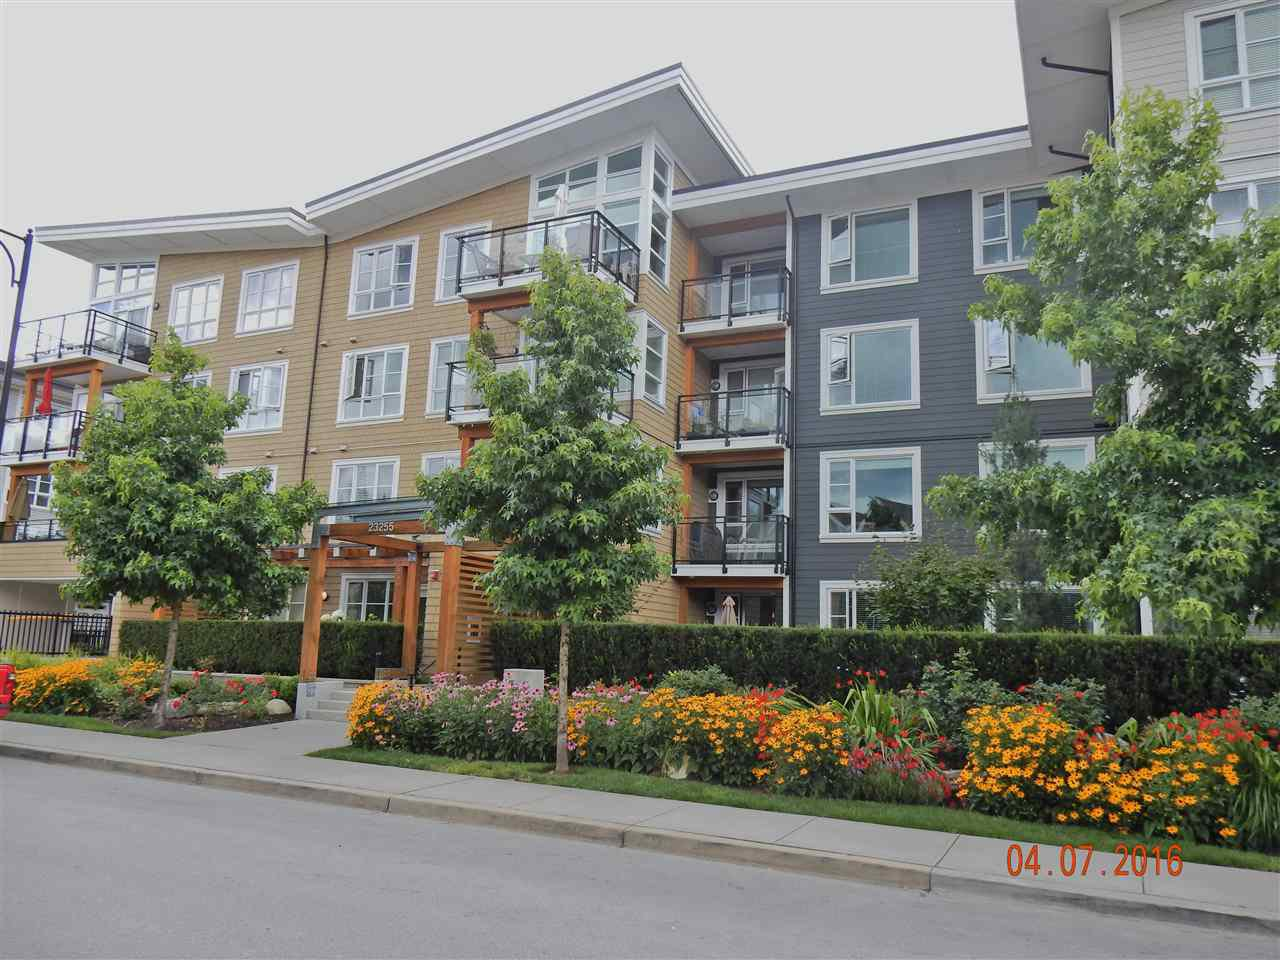 Main Photo: 202 23255 BILLY BROWN ROAD in Langley: Fort Langley Condo for sale : MLS®# R2088862